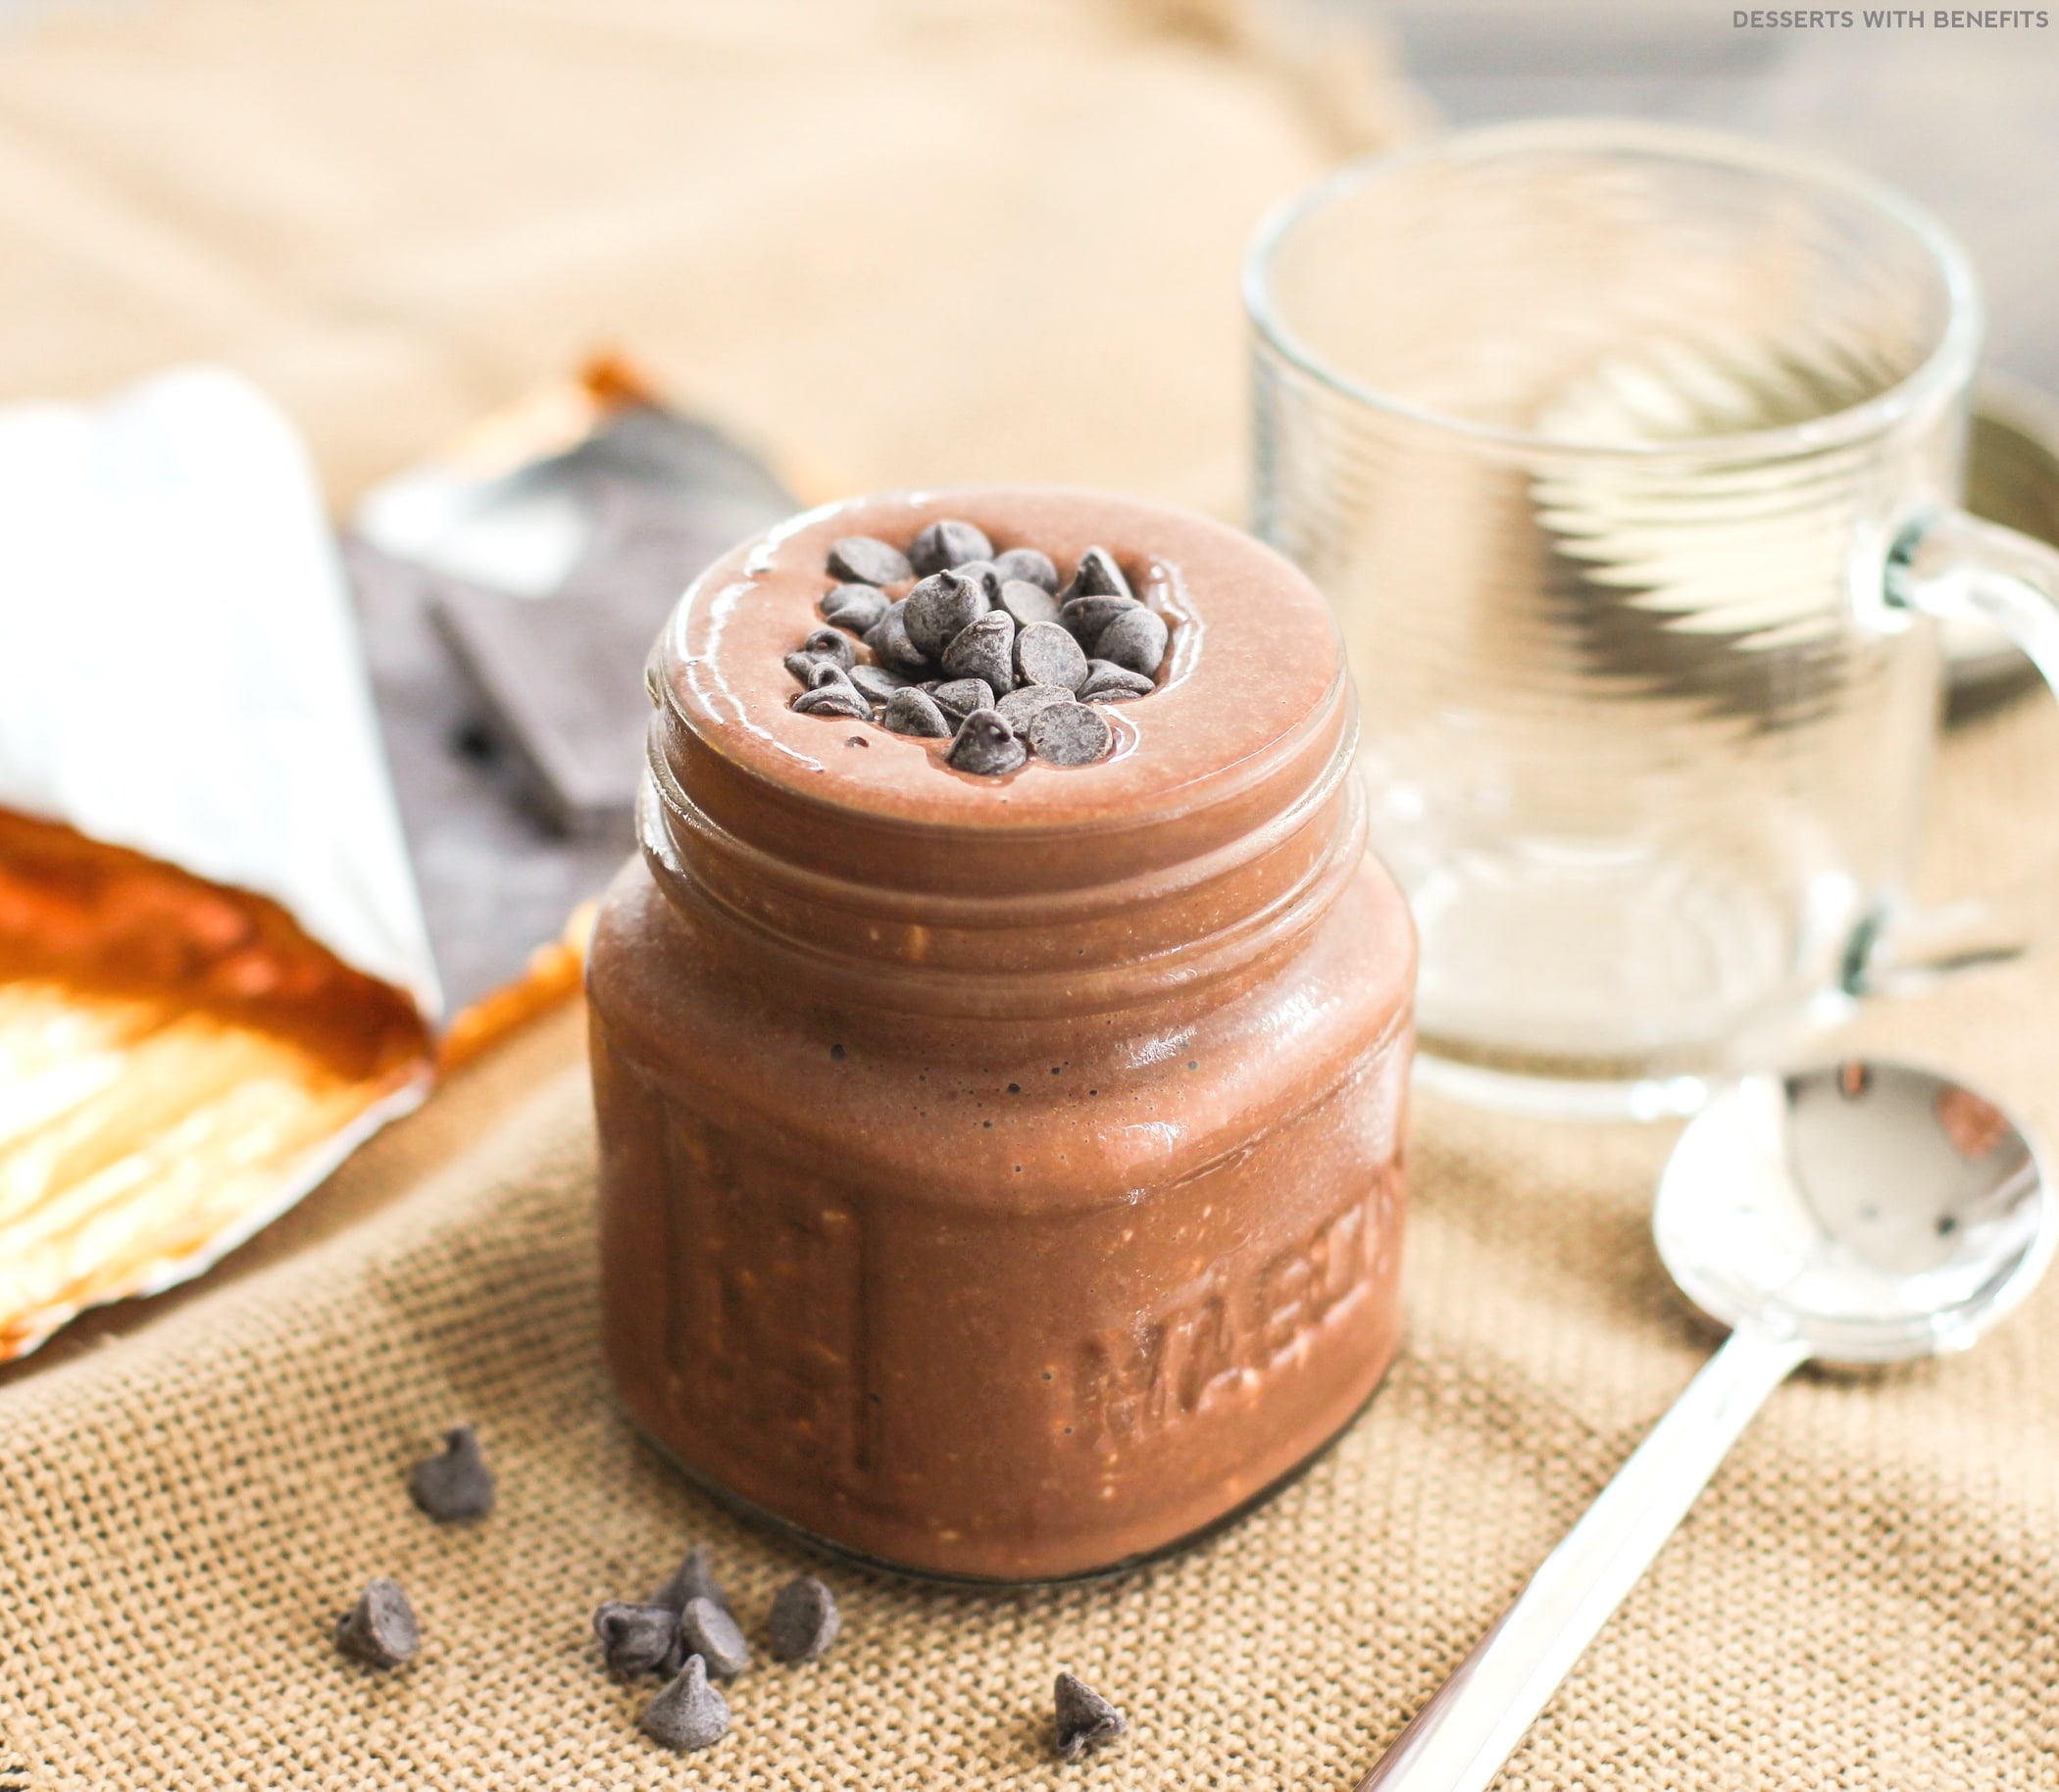 Healthy Chocolate Fudge Brownie Overnight Dessert Oats (refined sugar free, low fat, high protein, high fiber, gluten free, vegan option) - Healthy Dessert Recipes at Desserts with Benefits